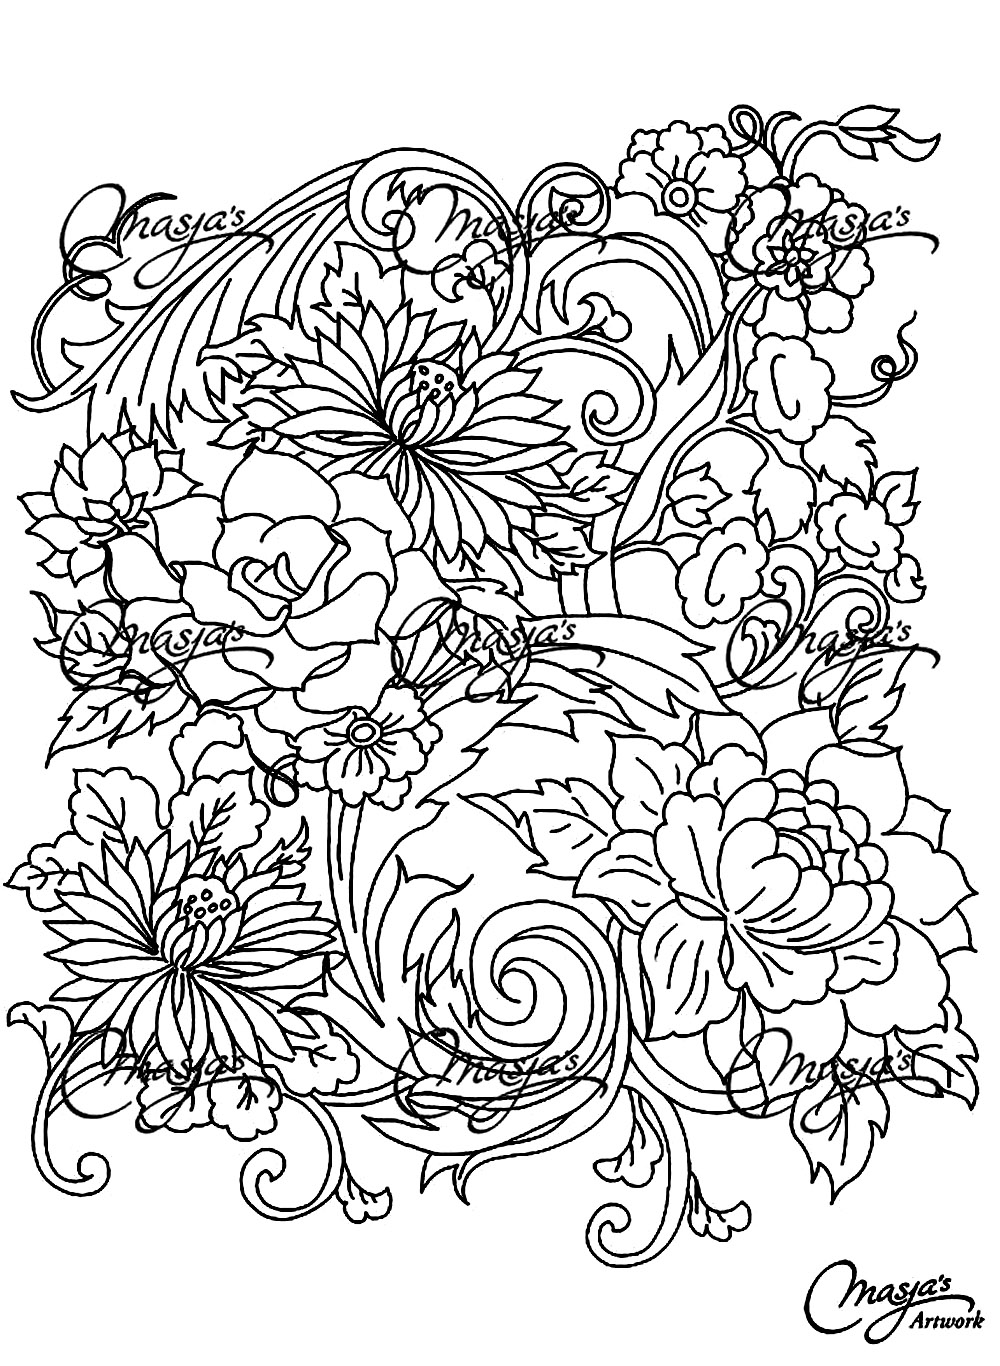 Drawing flower - Flowers & vegetation - Coloring pages for adults